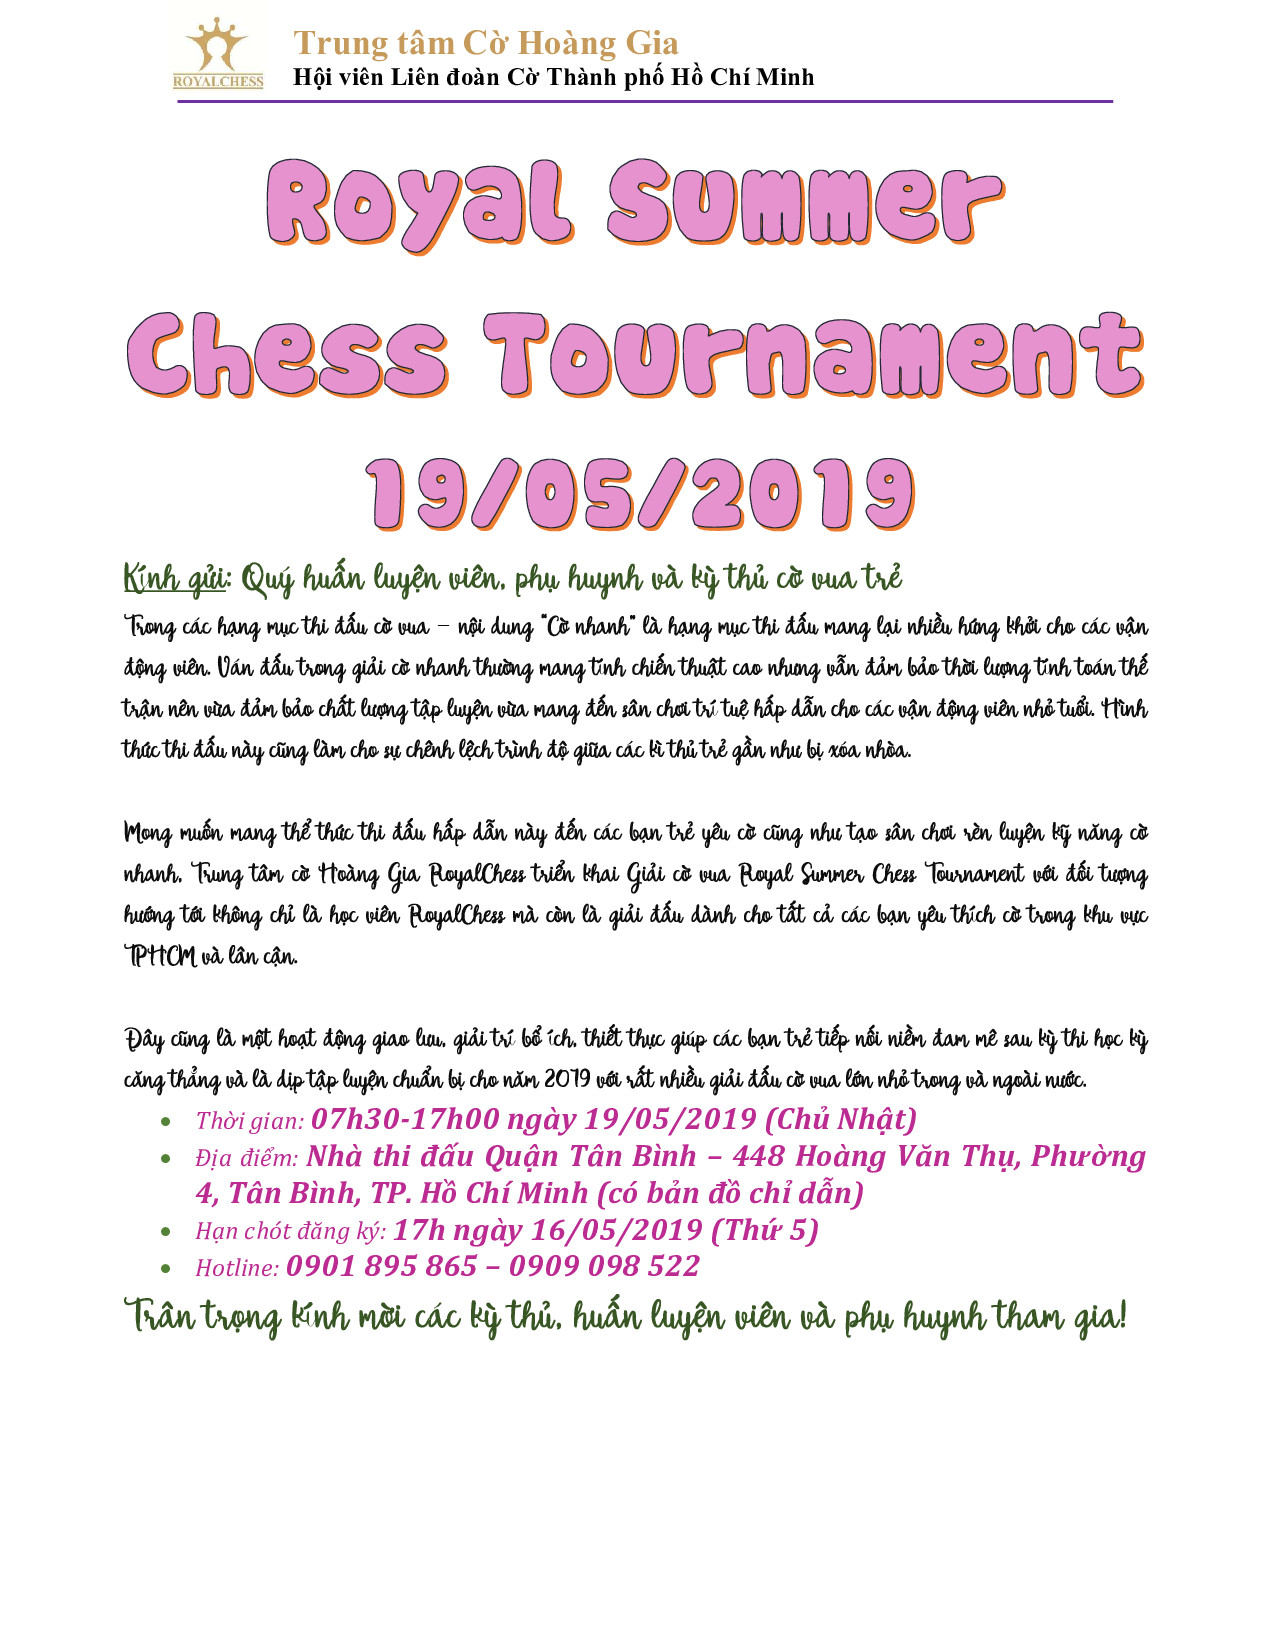 Th-m-i-RoyalChess-Summer-Tournament-2019-19-05-2019-_p001.jpg